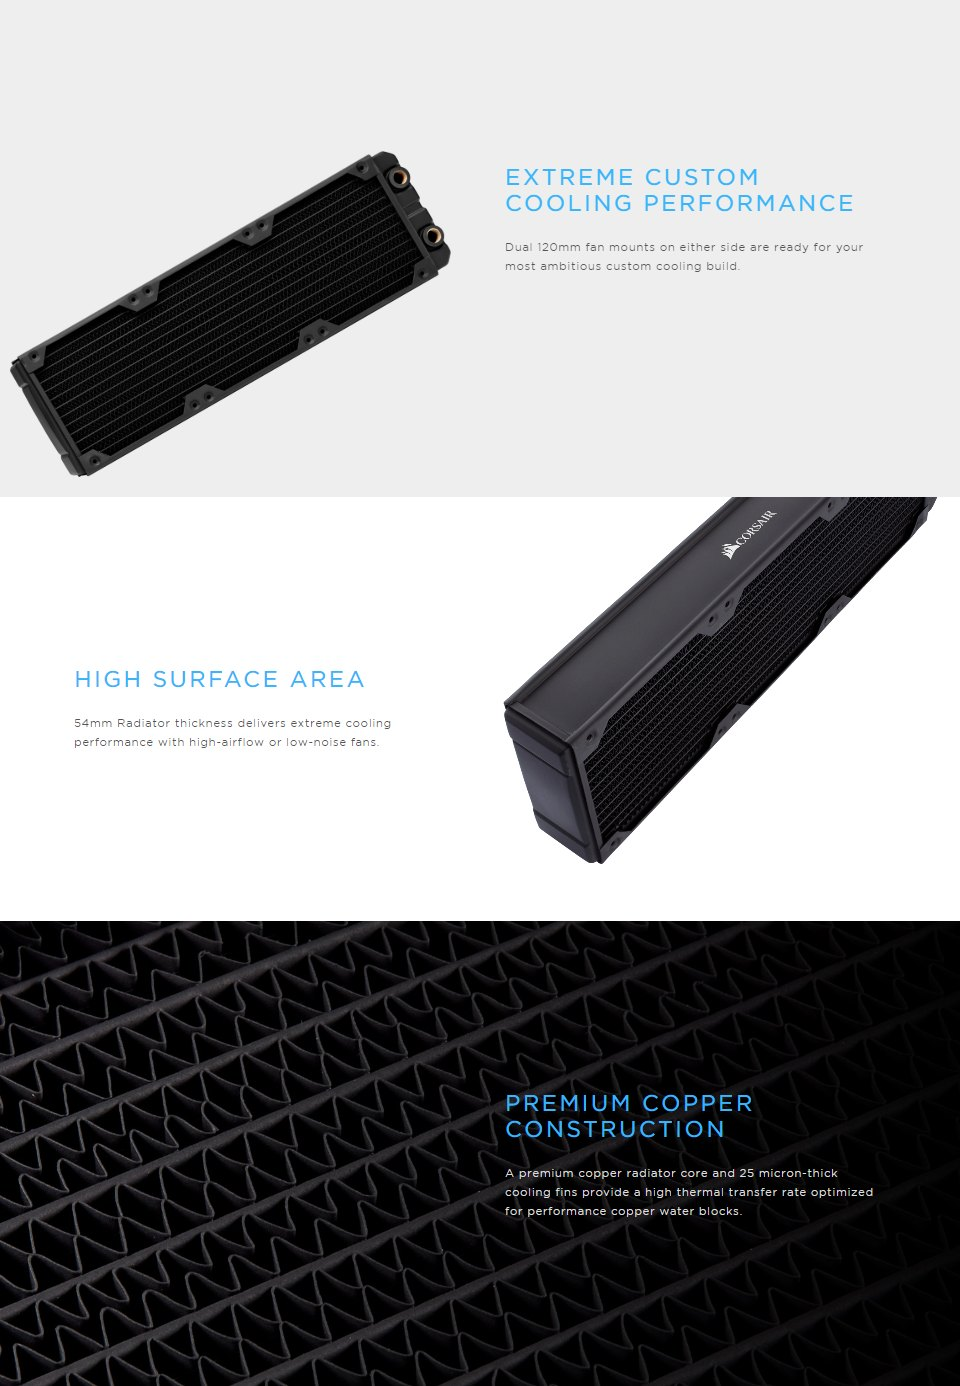 Corsair Hydro X Series XR7 360mm Water Cooling Radiator features